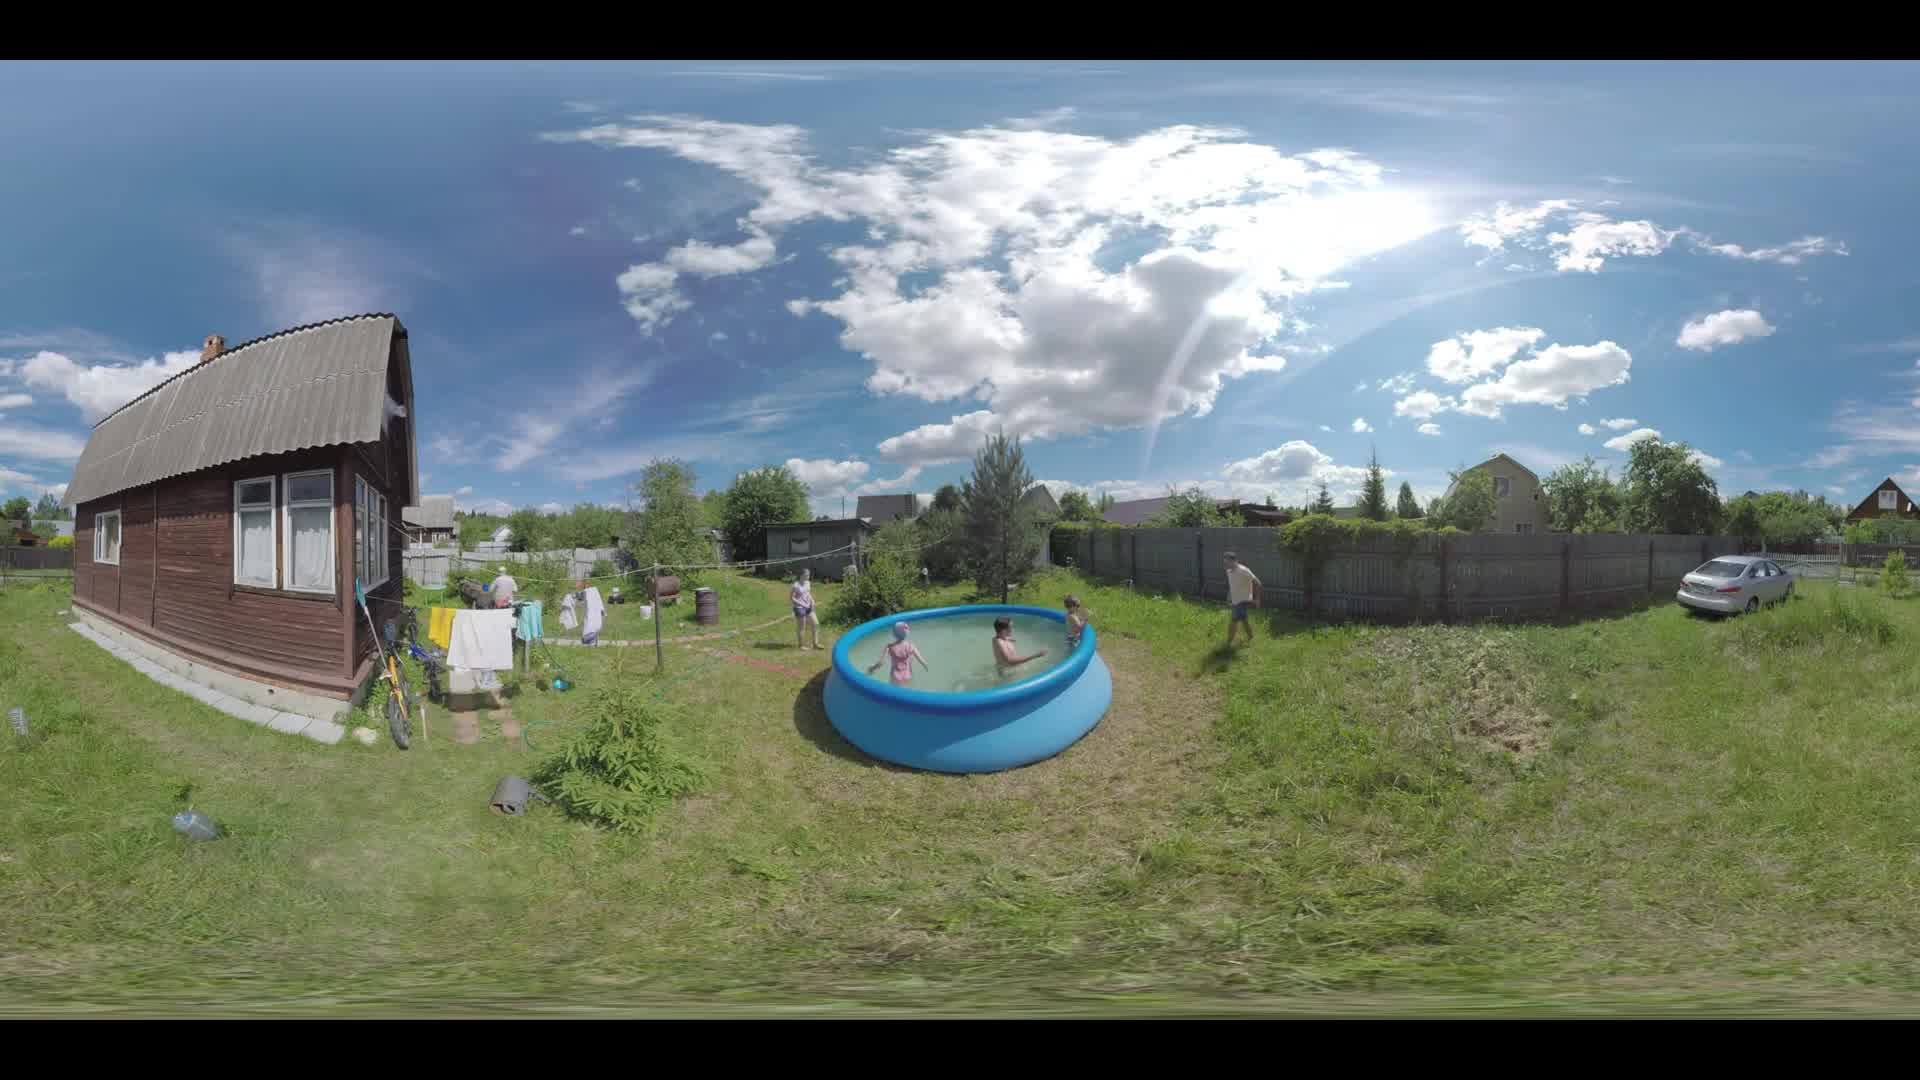 360 VR video. Two boys and a girl having fun in outdoor rubber pool during the rest in the countryside. Summer weekend in the country house. Adults watching kids. Ruza, Moscow region. Real sound included